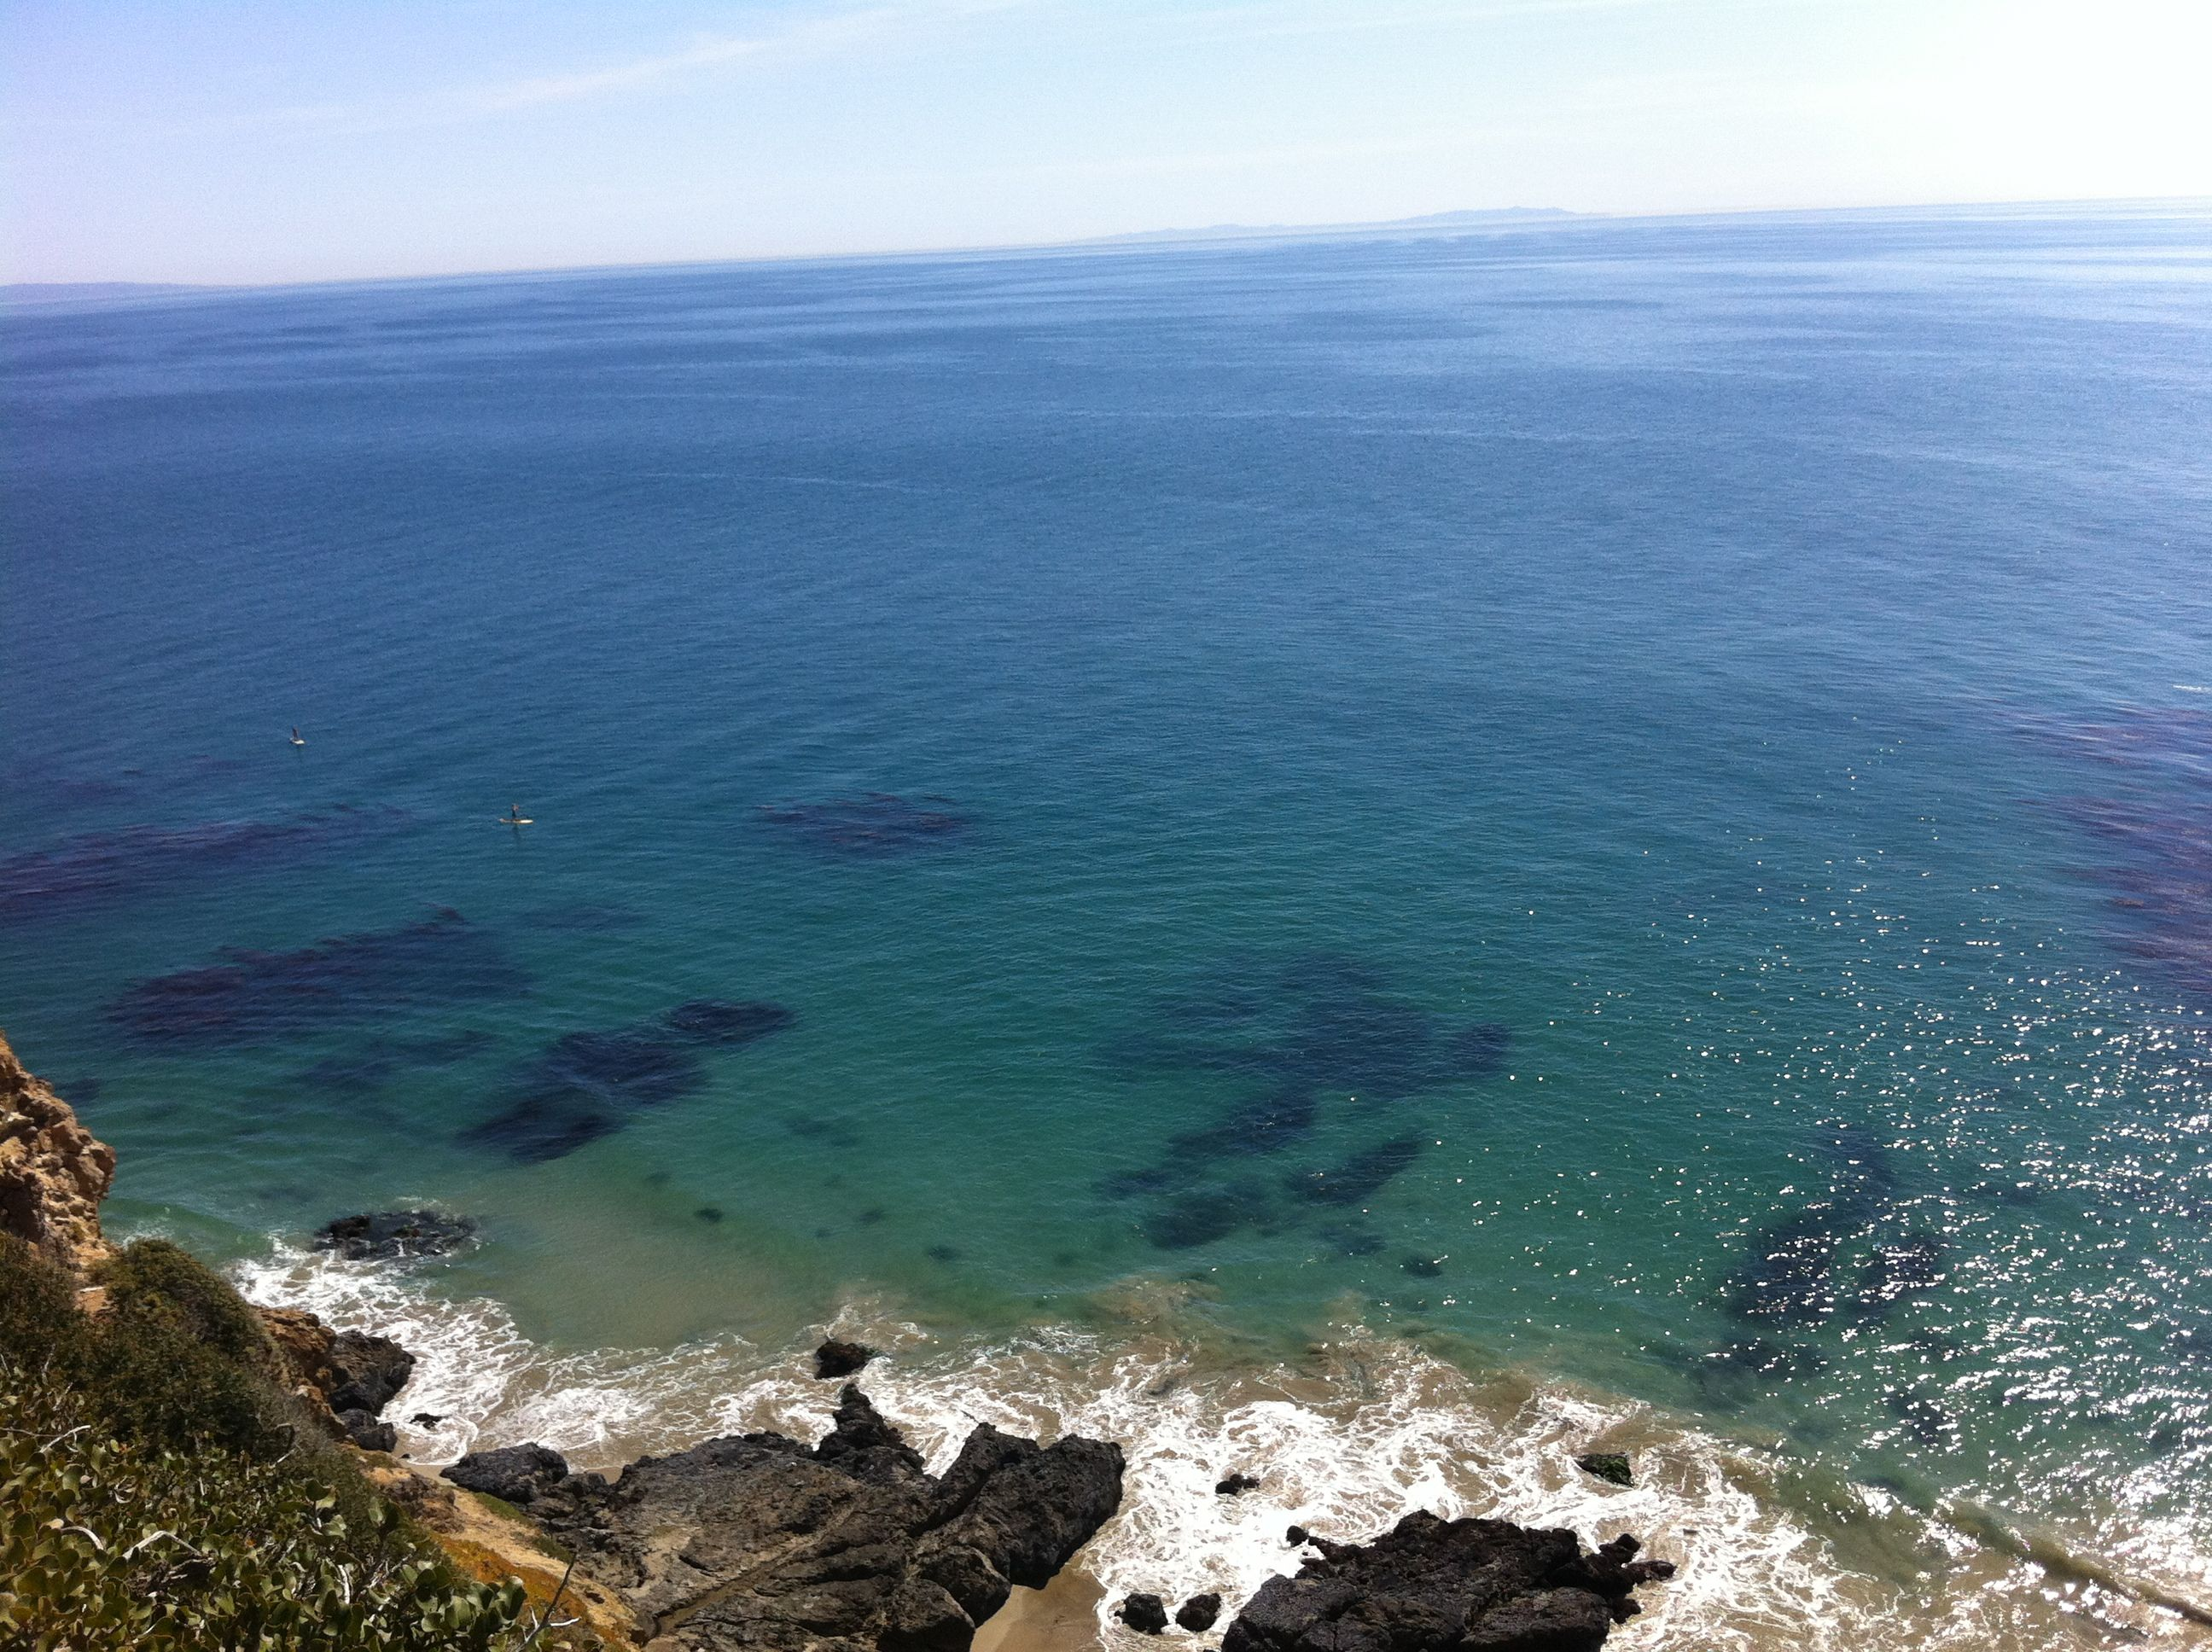 The view from the top of Point Dume.  Chili Sandals love the beach.